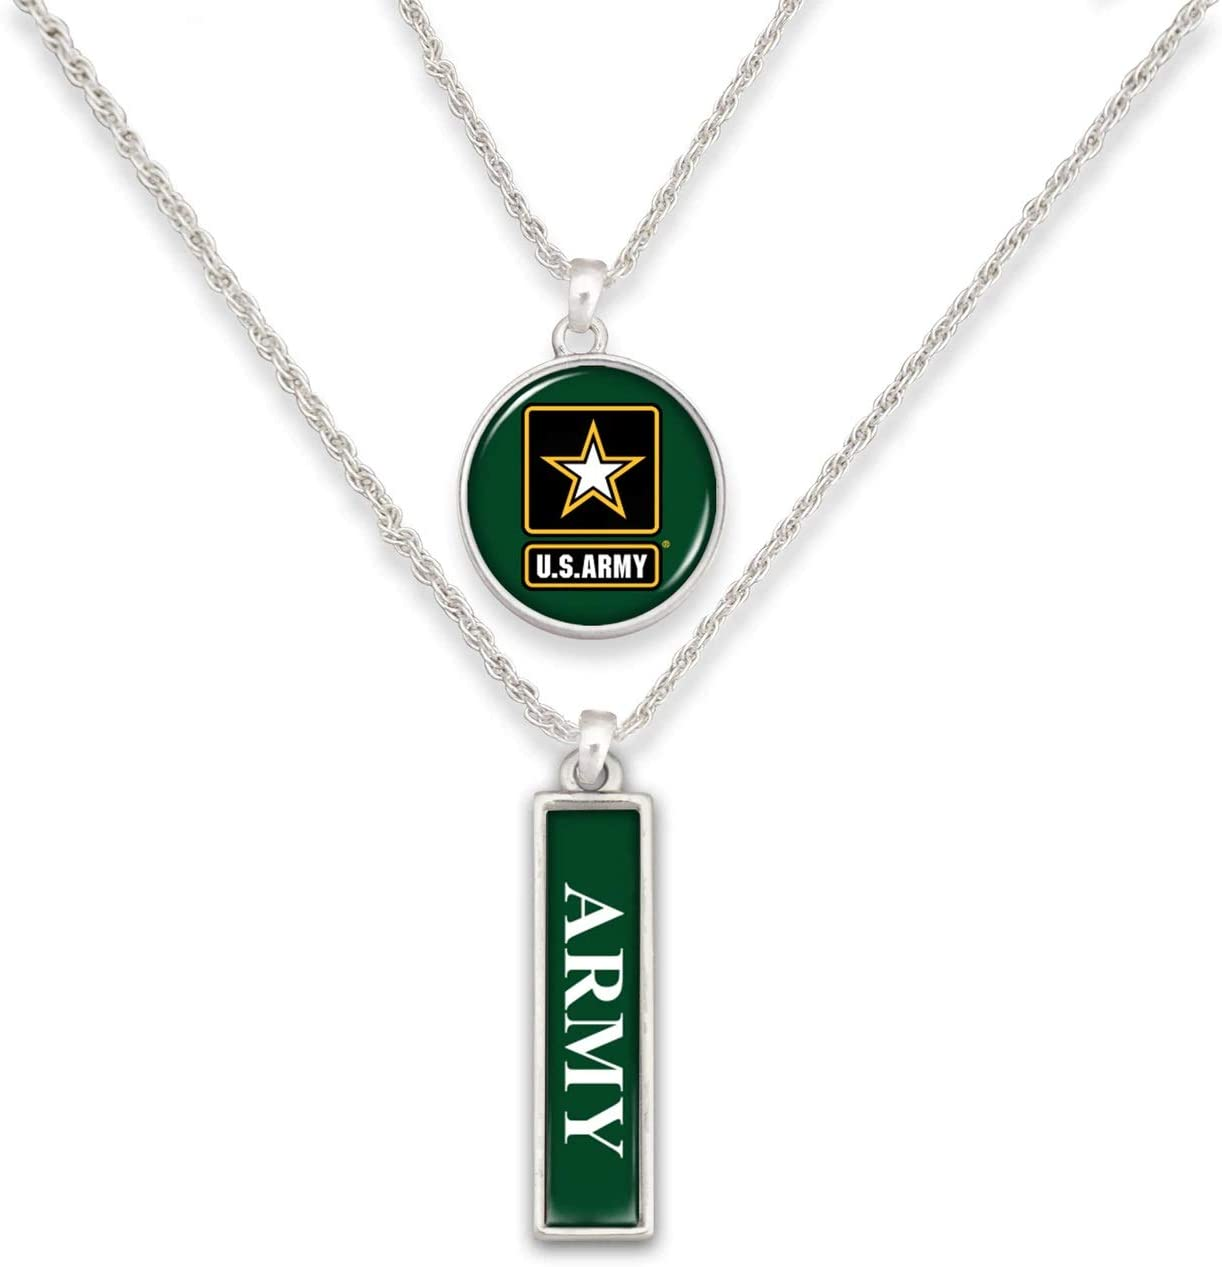 FTH U.S Army Silver Tone Double Charm Necklace with Round Logo and Army Nameplate Charms